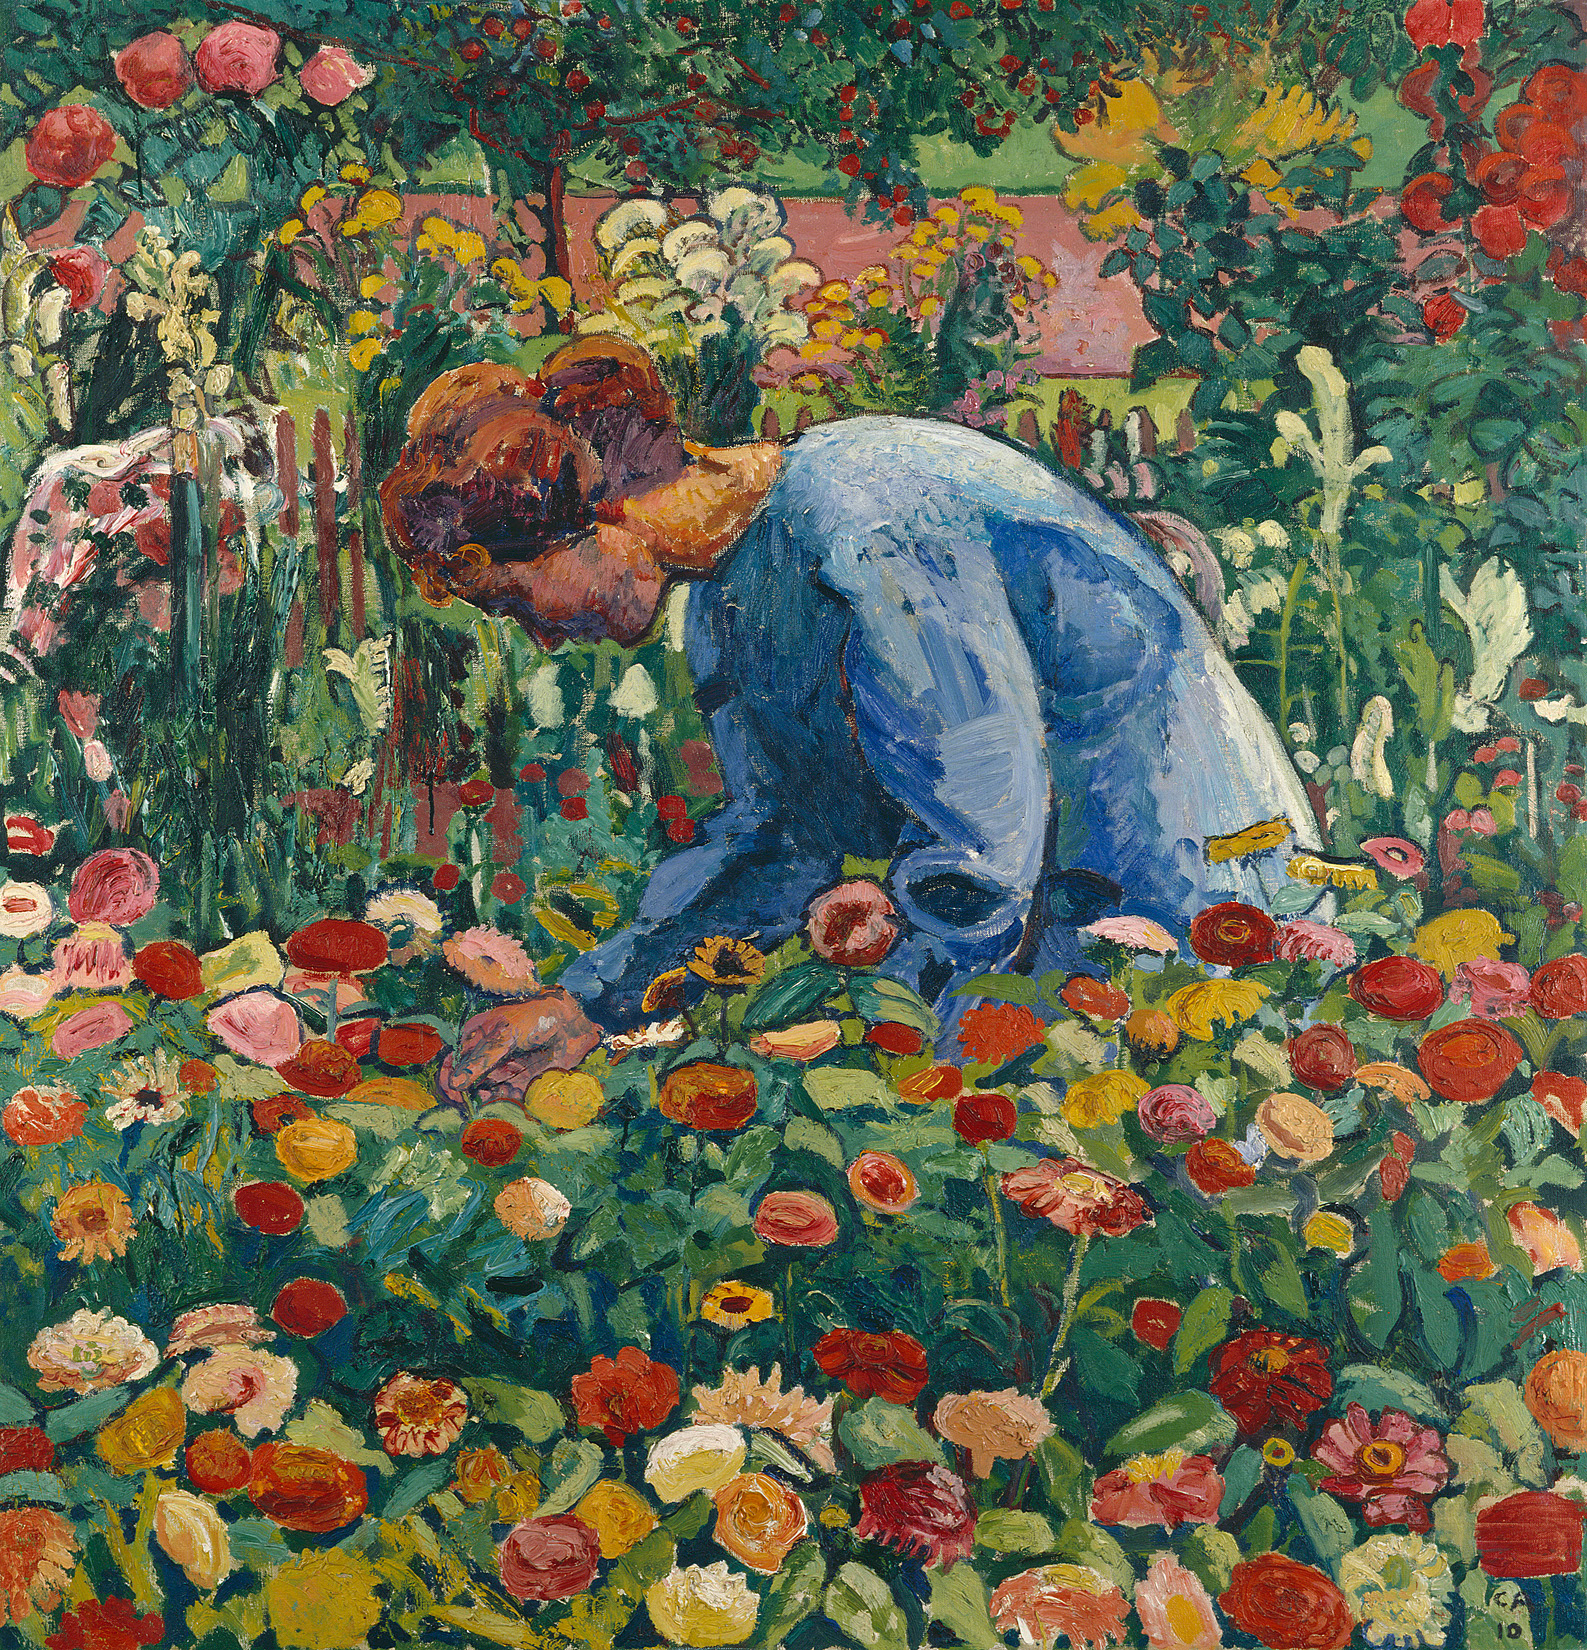 Cuno Amiet, Anna Amiet in the Flower Garden, 1910